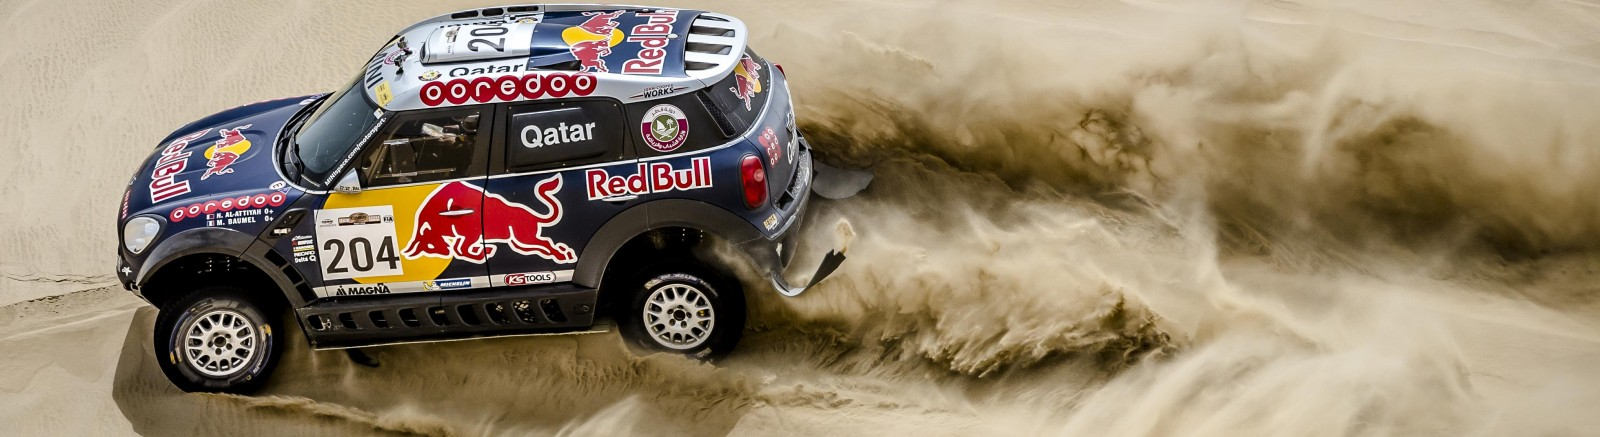 World Cup Cross Country Rally